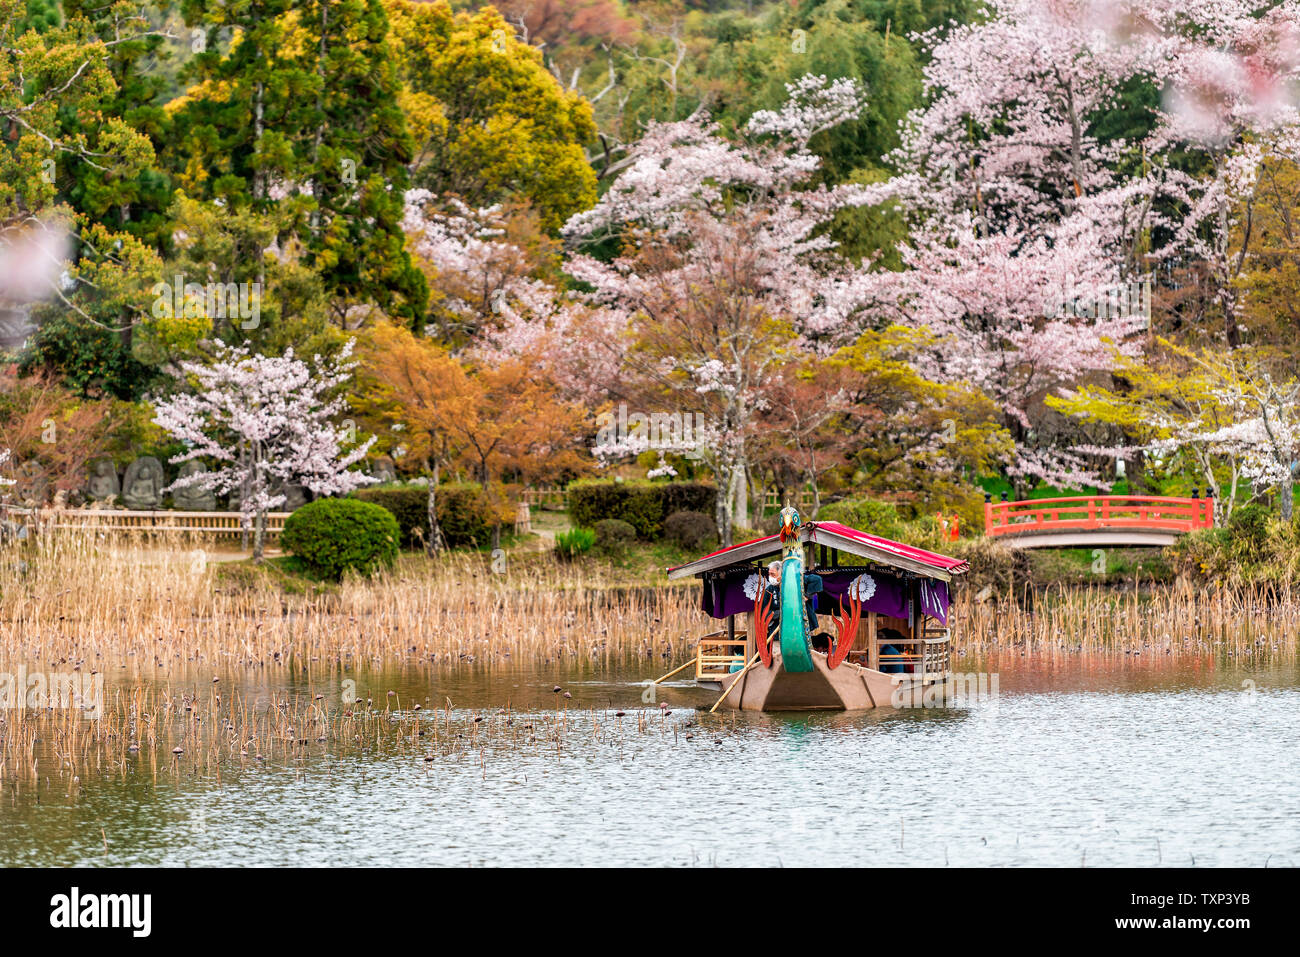 Kyoto, Japan - April 11, 2019: Cherry blossom by Osawa-no-Ike Pond lake in spring in Arashiyama area by Daikakuji Temple with red traditional tour boa Stock Photo